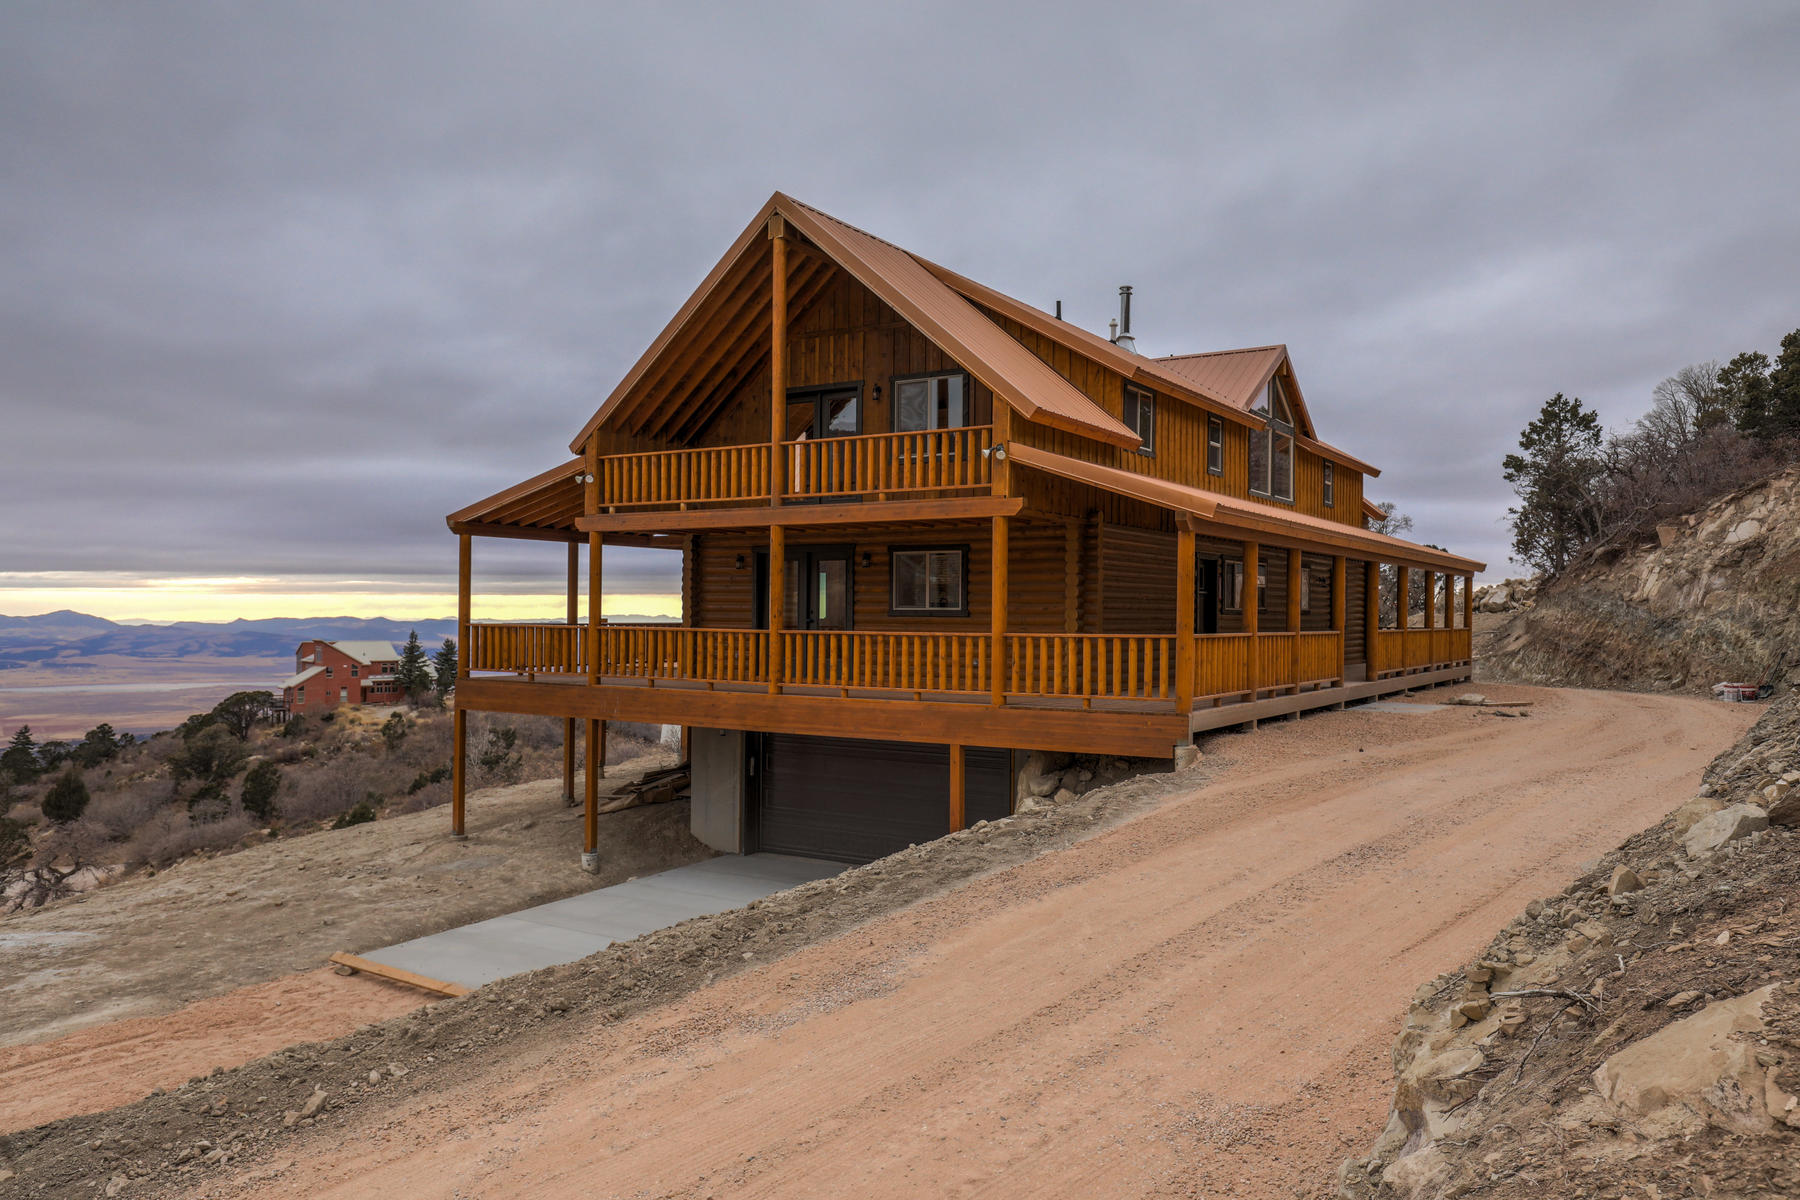 Single Family Homes for Sale at New Cabin On Top Of The Mountain 1247 E Cedar Highlands Drive, Cedar City, Utah 84720 United States